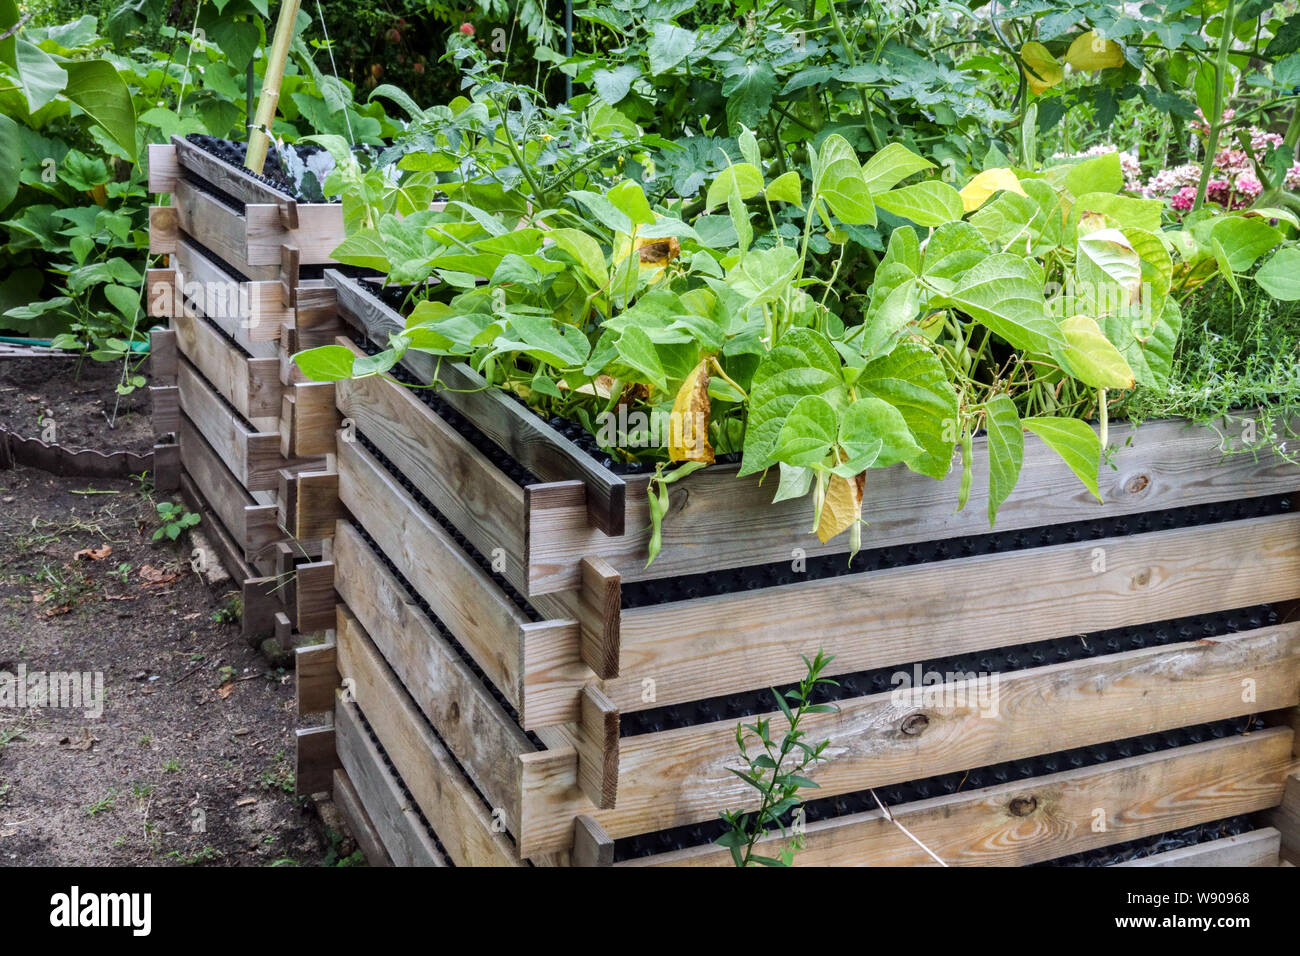 Two wooden composters placed in the shady part of the garden Stock Photo